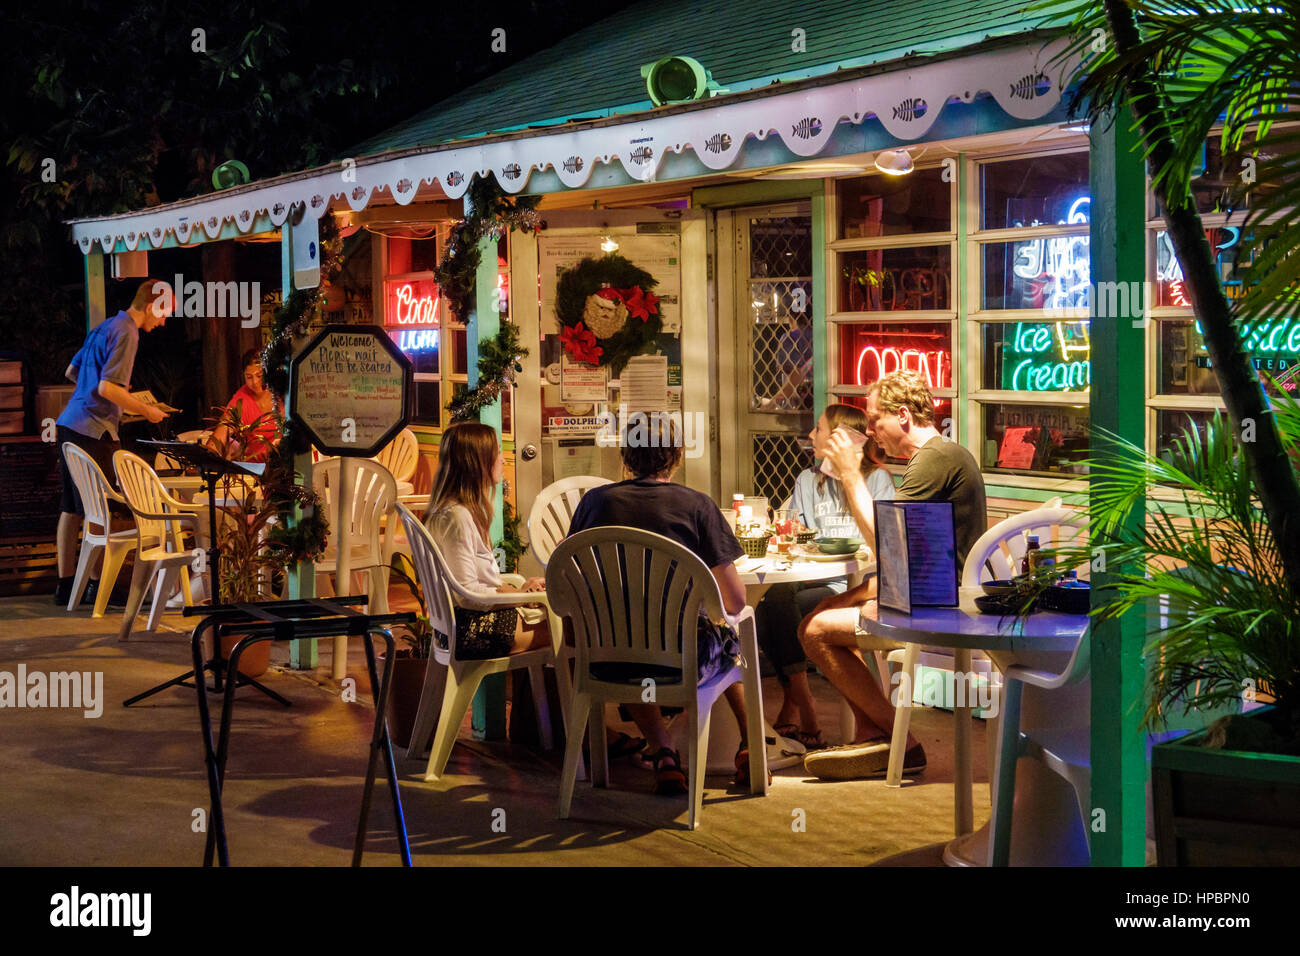 Key Largo, Florida Florida Keys superior la Sra. Mac's Kitchen Restaurant mariscos tabla alfresco comedor porche Imagen De Stock